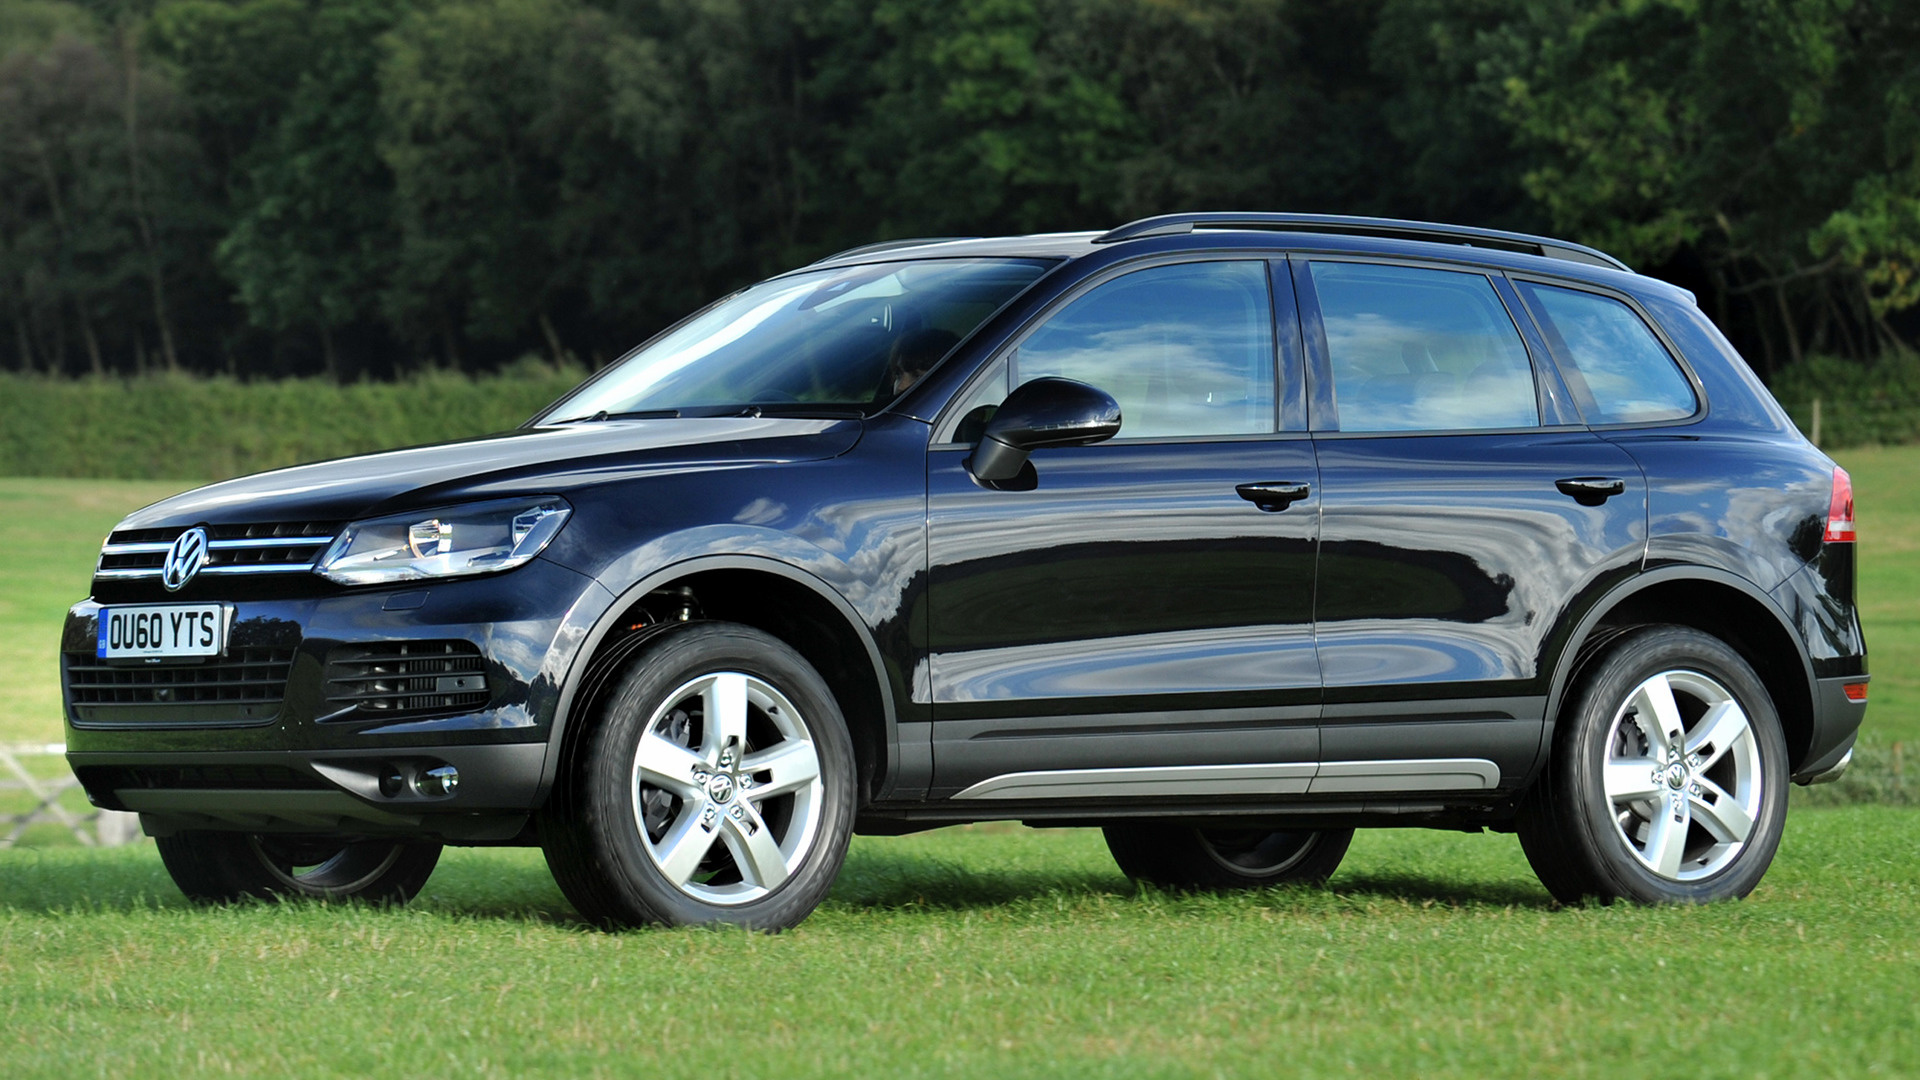 volkswagen touareg 2010 uk wallpapers and hd images. Black Bedroom Furniture Sets. Home Design Ideas